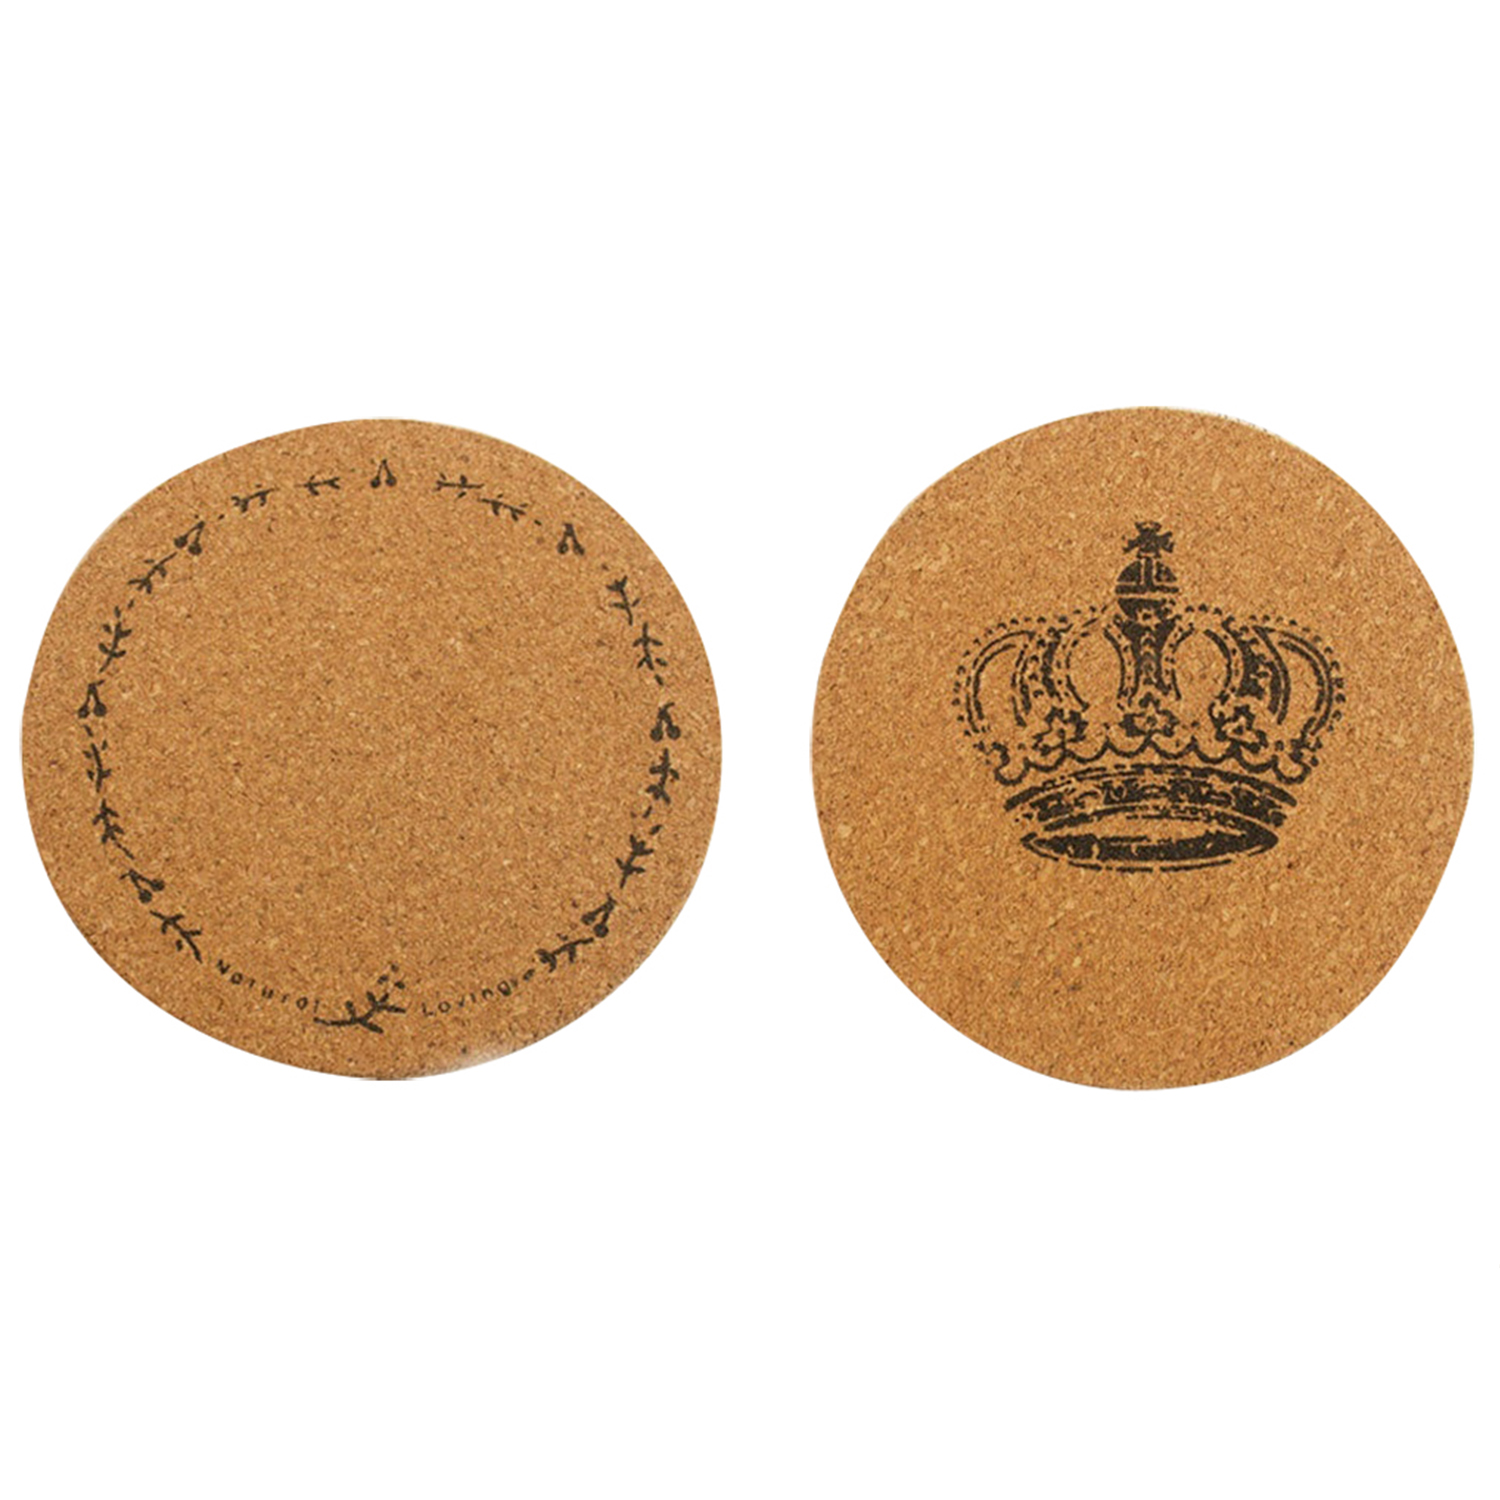 1pcs Plain Round Cork Coasters Coffee Drink Tea Cup Mat